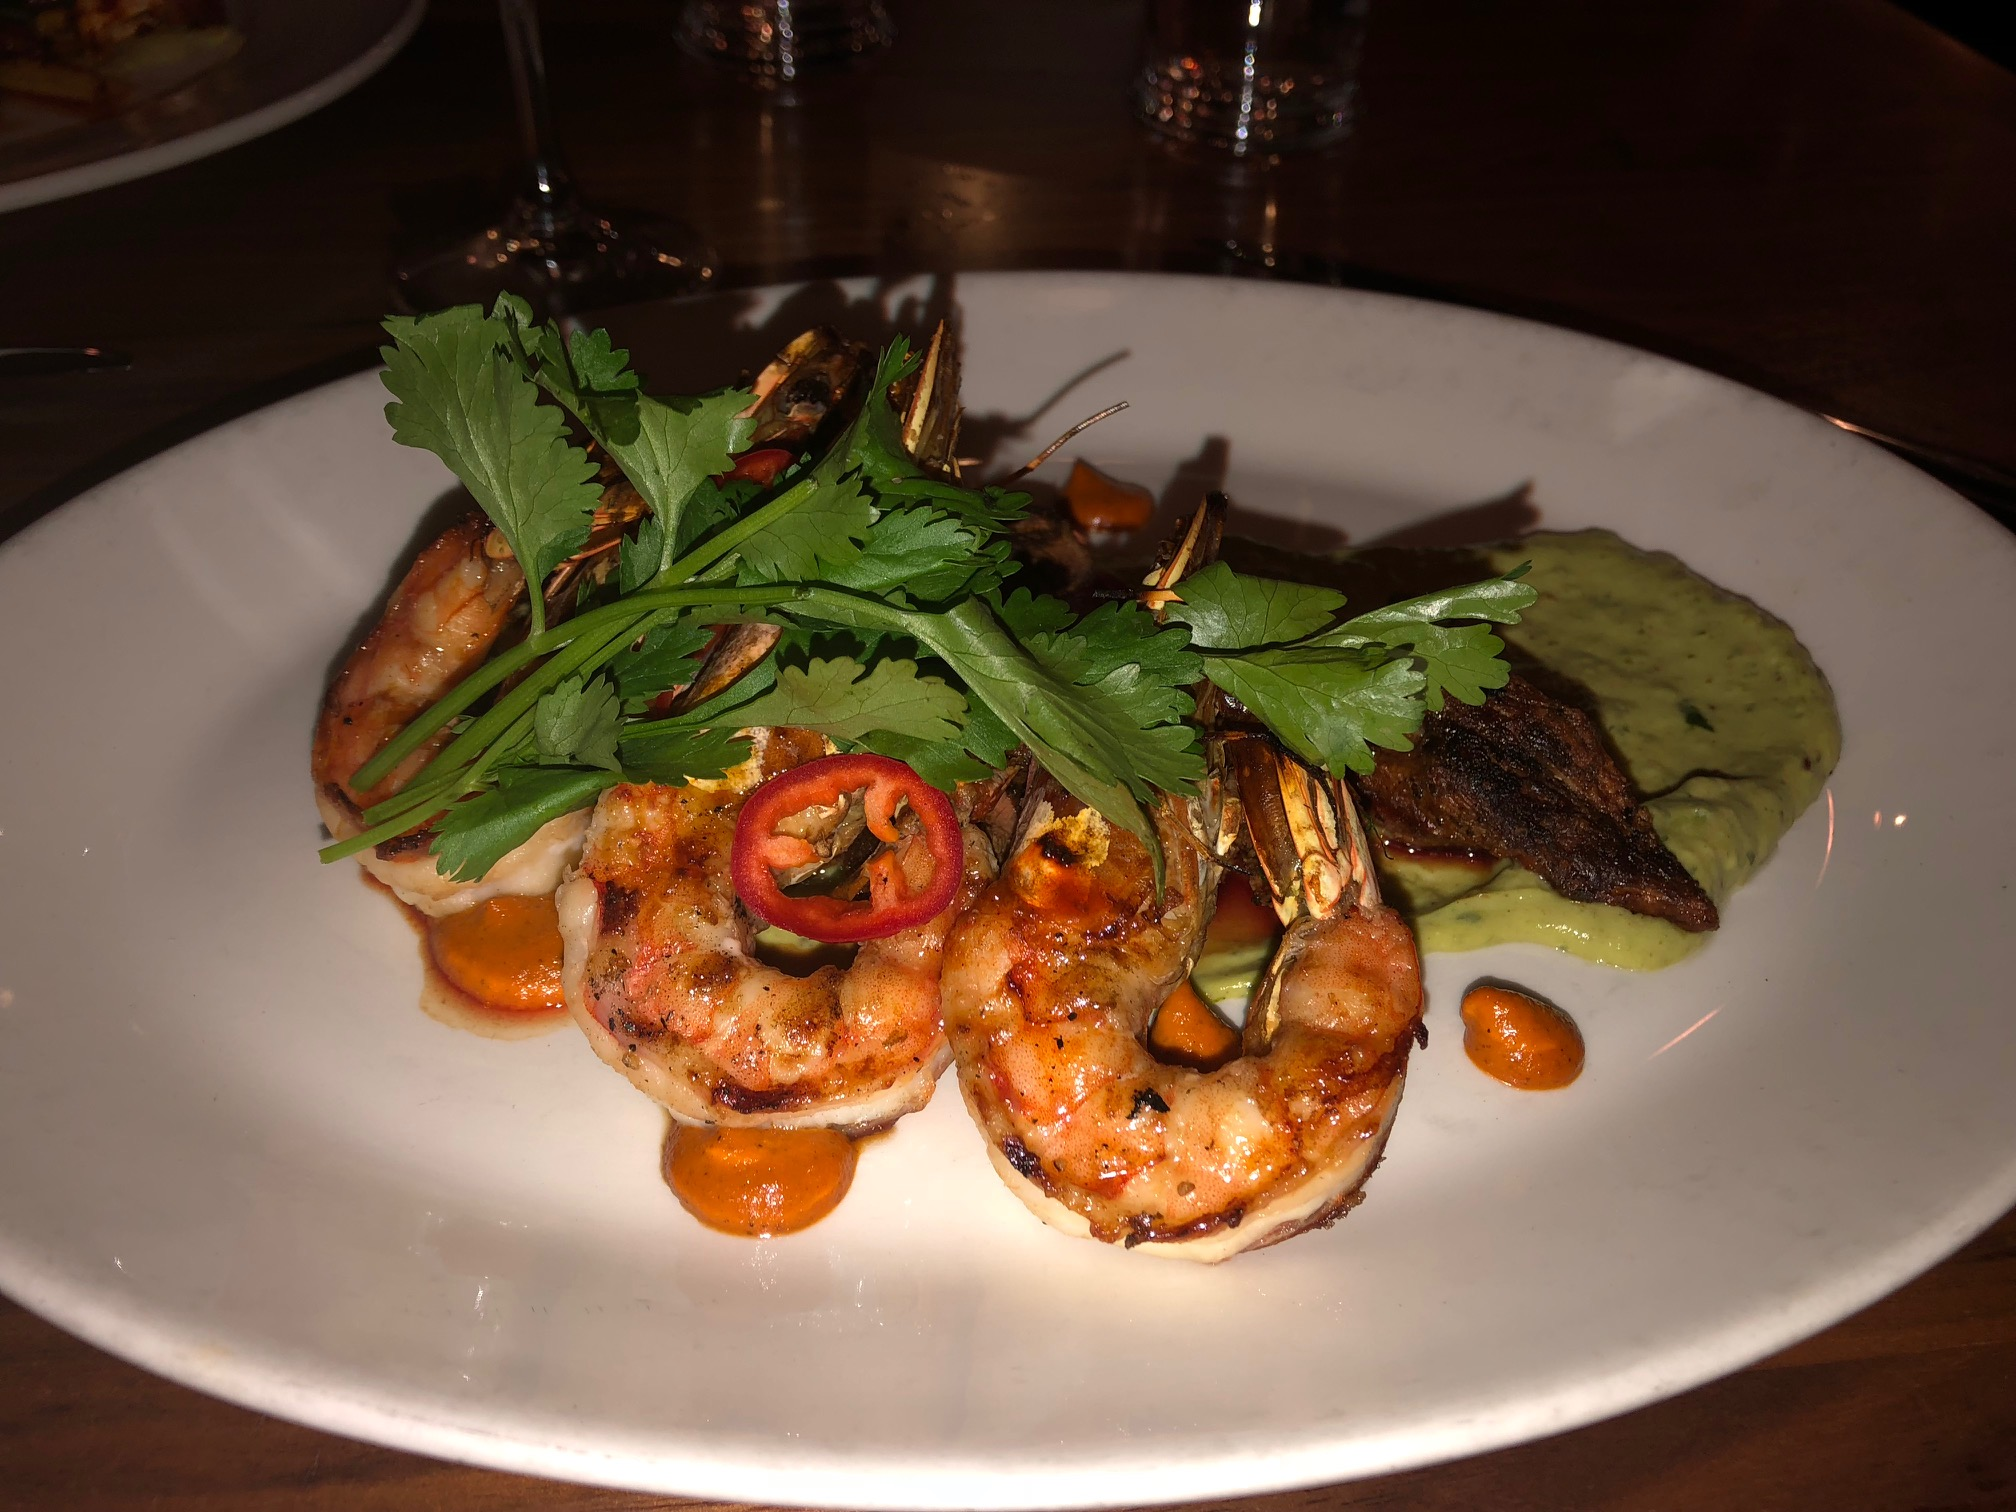 Here is my entree, the Brandt Beef Flat Iron Surf & Turf with Kauai prawns, avocado puree, piquillo salsa (GF). Needless to say, I was quite happy with this selection. The steak was very nice and the prawns, well, I could have eaten 10 more! Image Credit: Dan Meyers